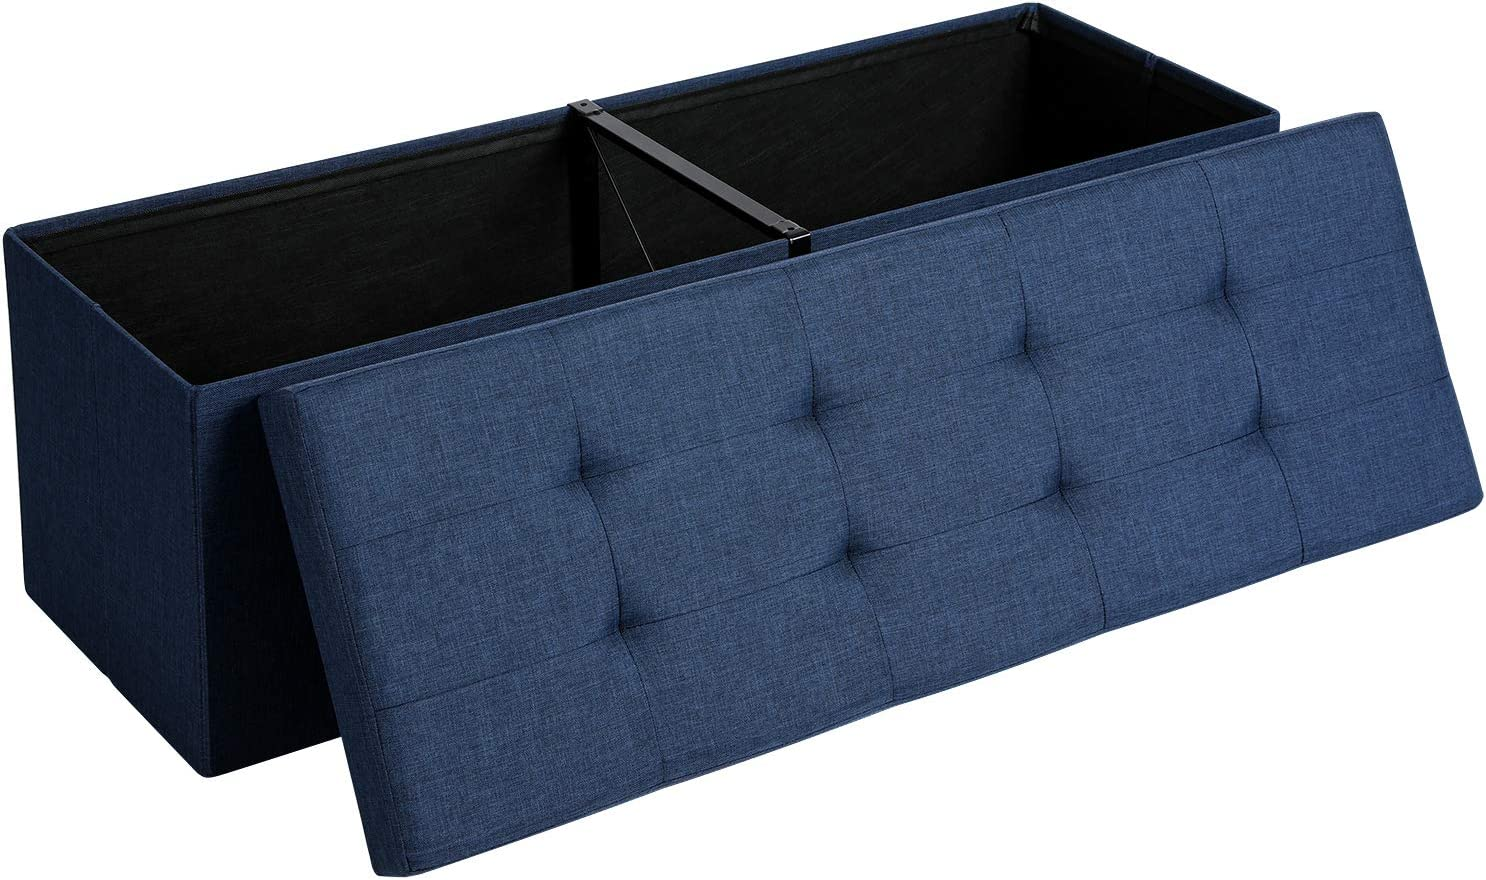 SONGMICS Storage Ottoman Bench, Padded Chest with Lid, Folding Seat, 120L Capacity, Hold up to 660lb, Navy Blue ULSF77IN